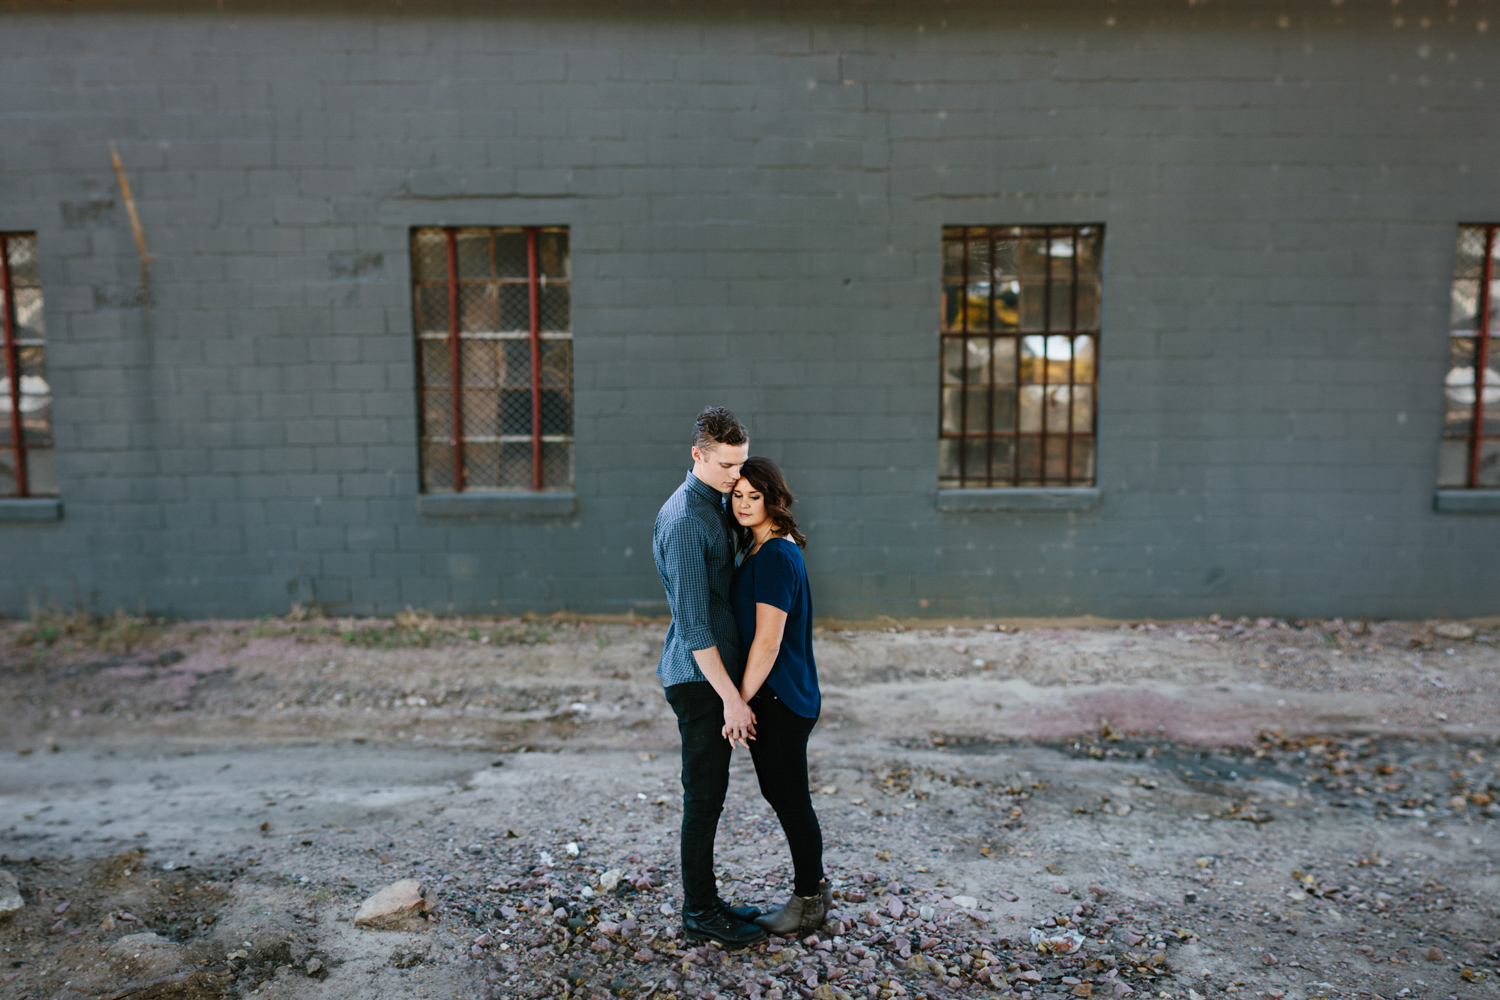 SiouxFalls_DesMoines_Wedding_Engagement_Photographer_16.jpg